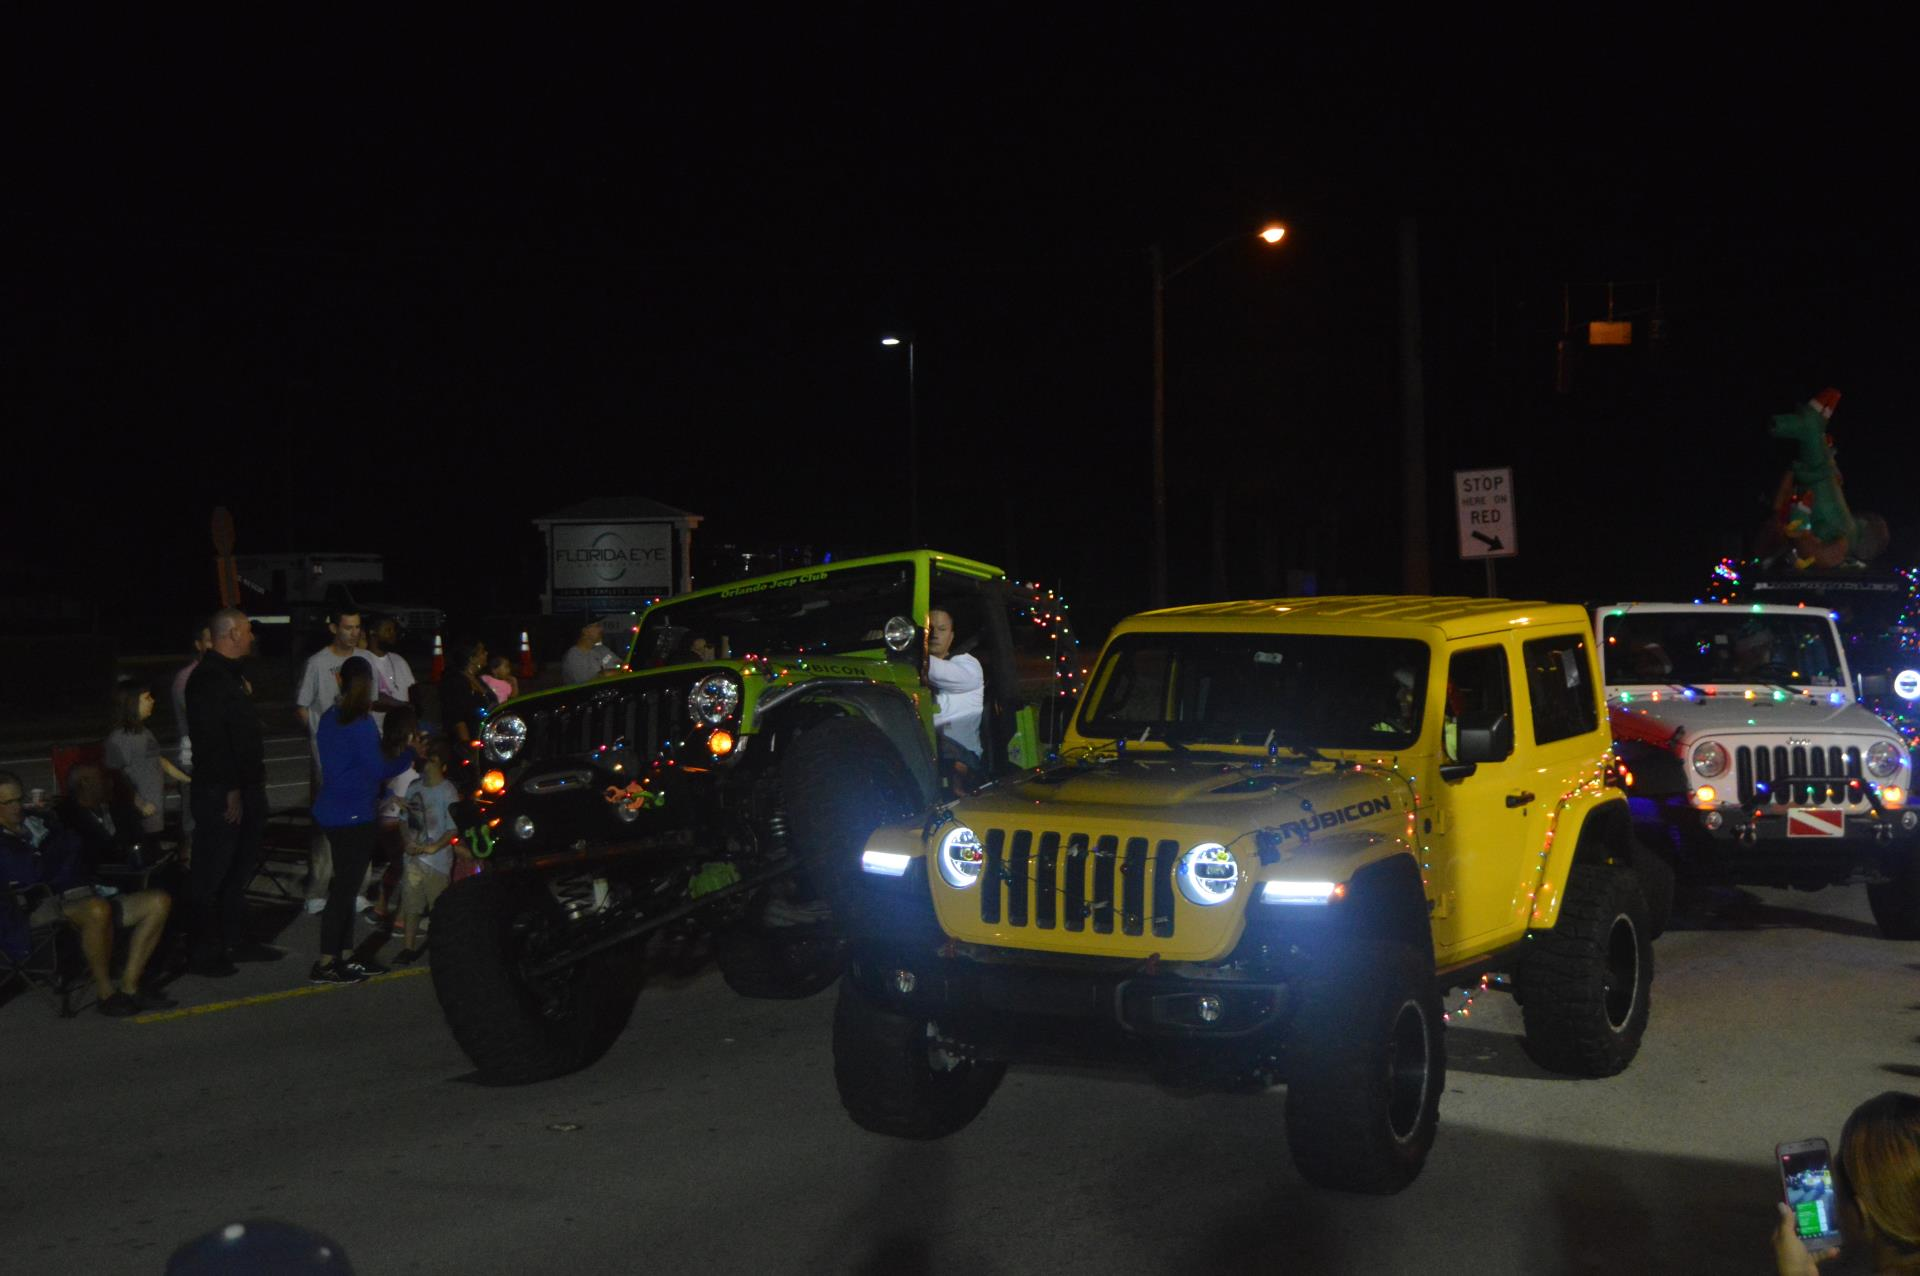 Best Motorized Group - Space Coast Jeep Club